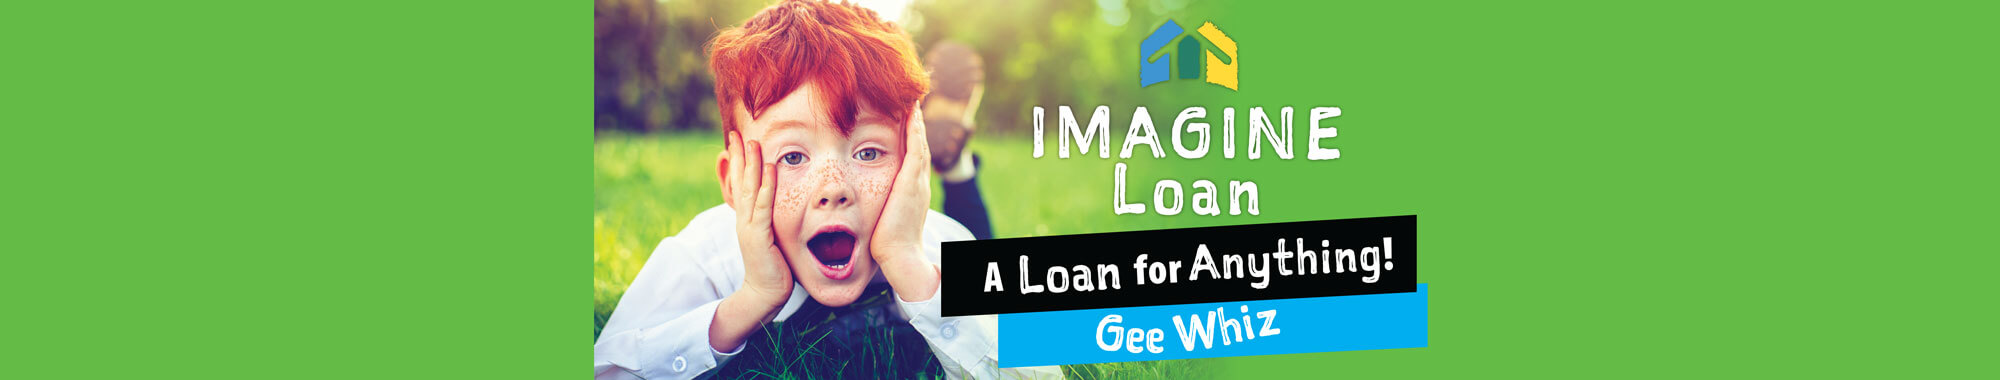 Imagine Loan - A Loan for Anything!